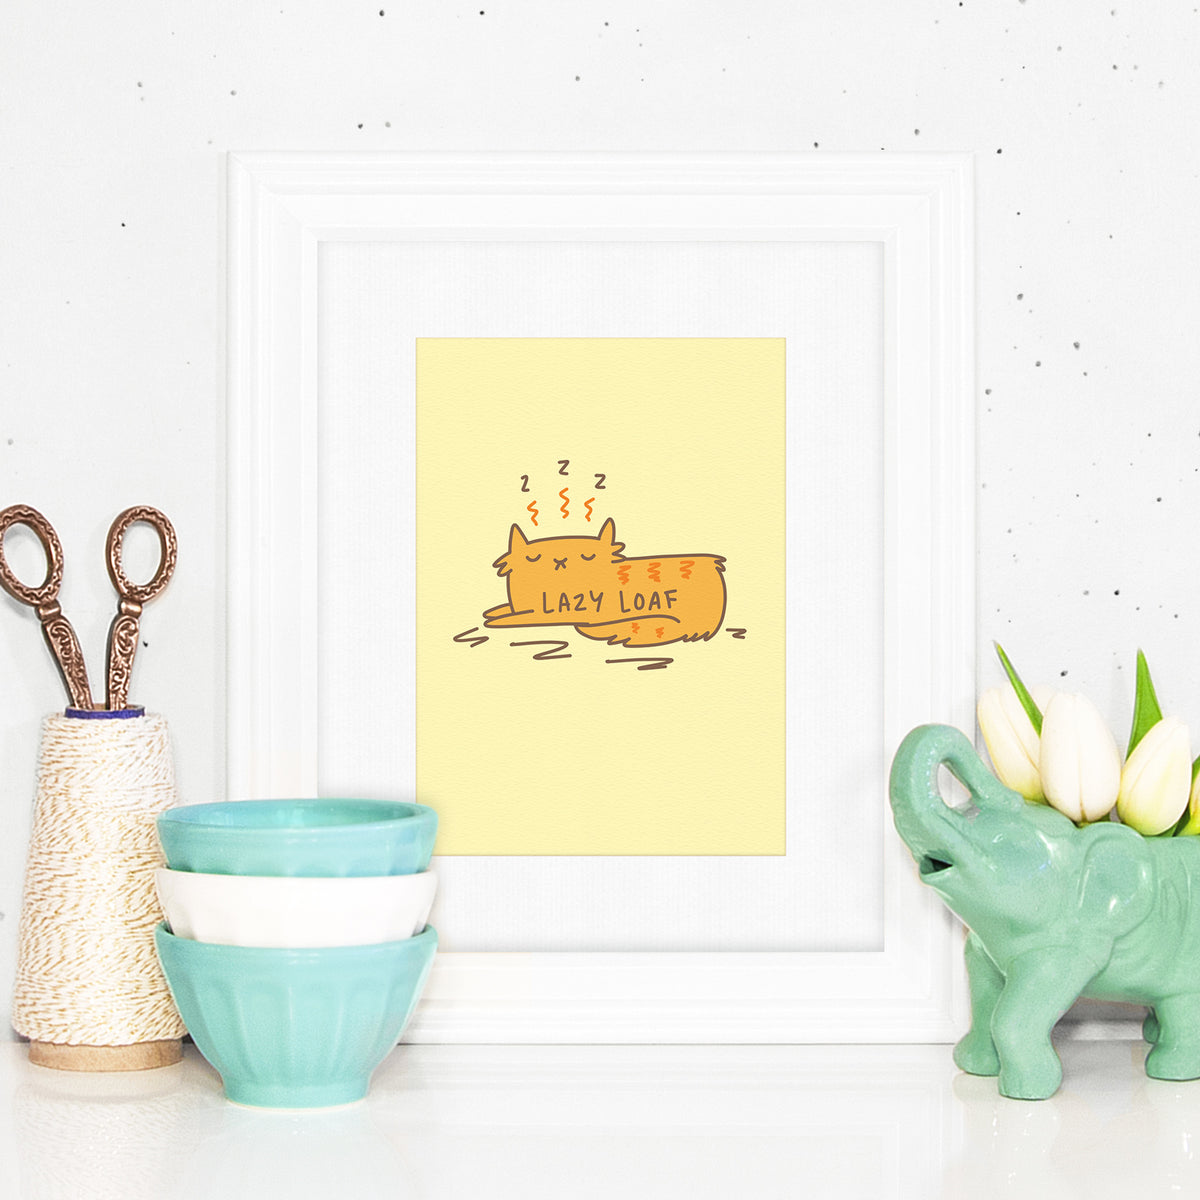 Lazy Loaf - Sleepy cat art print by My Cat Is People